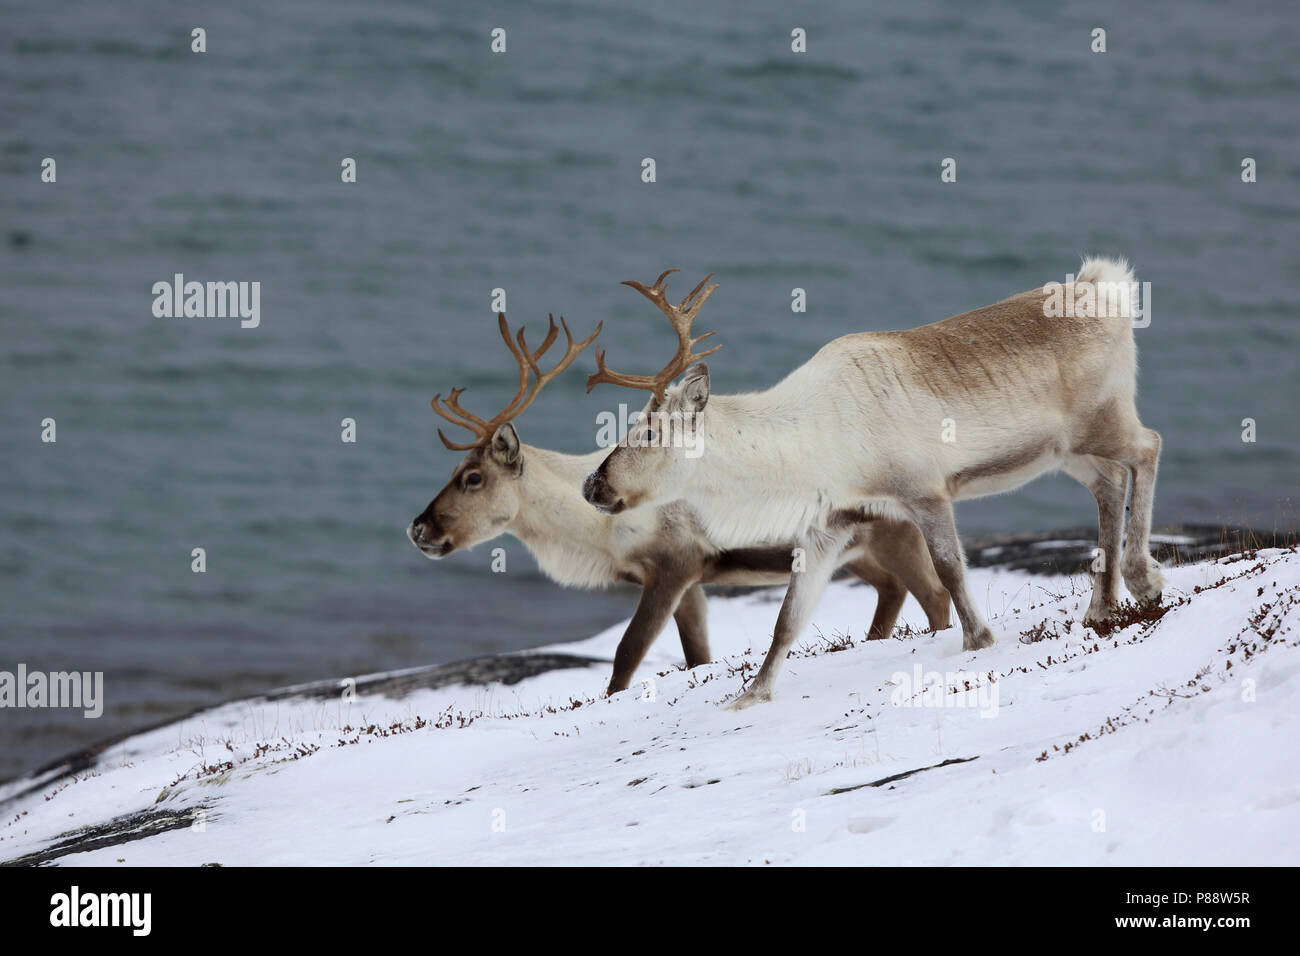 Twee Rendieren; Two Reindeers - Stock Image